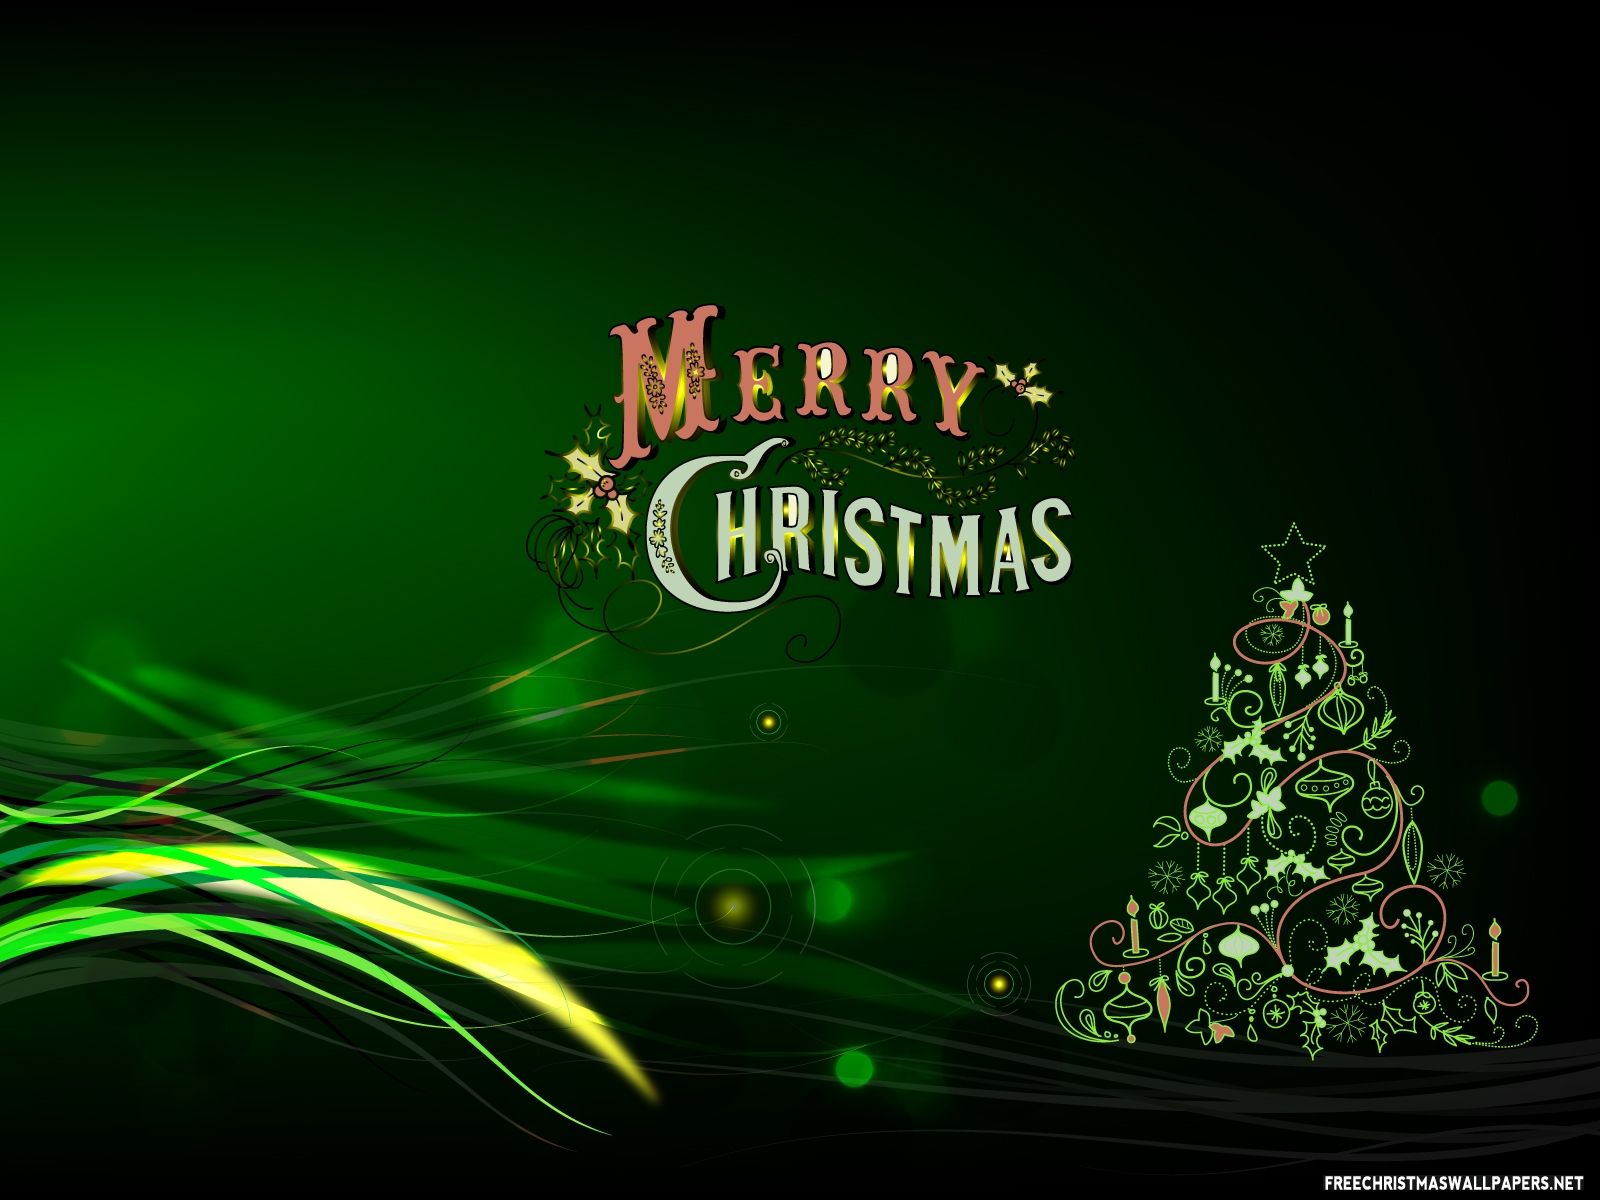 45 new free collection of hd christmas wallpapers psdreview - Free christmas images for desktop wallpaper ...